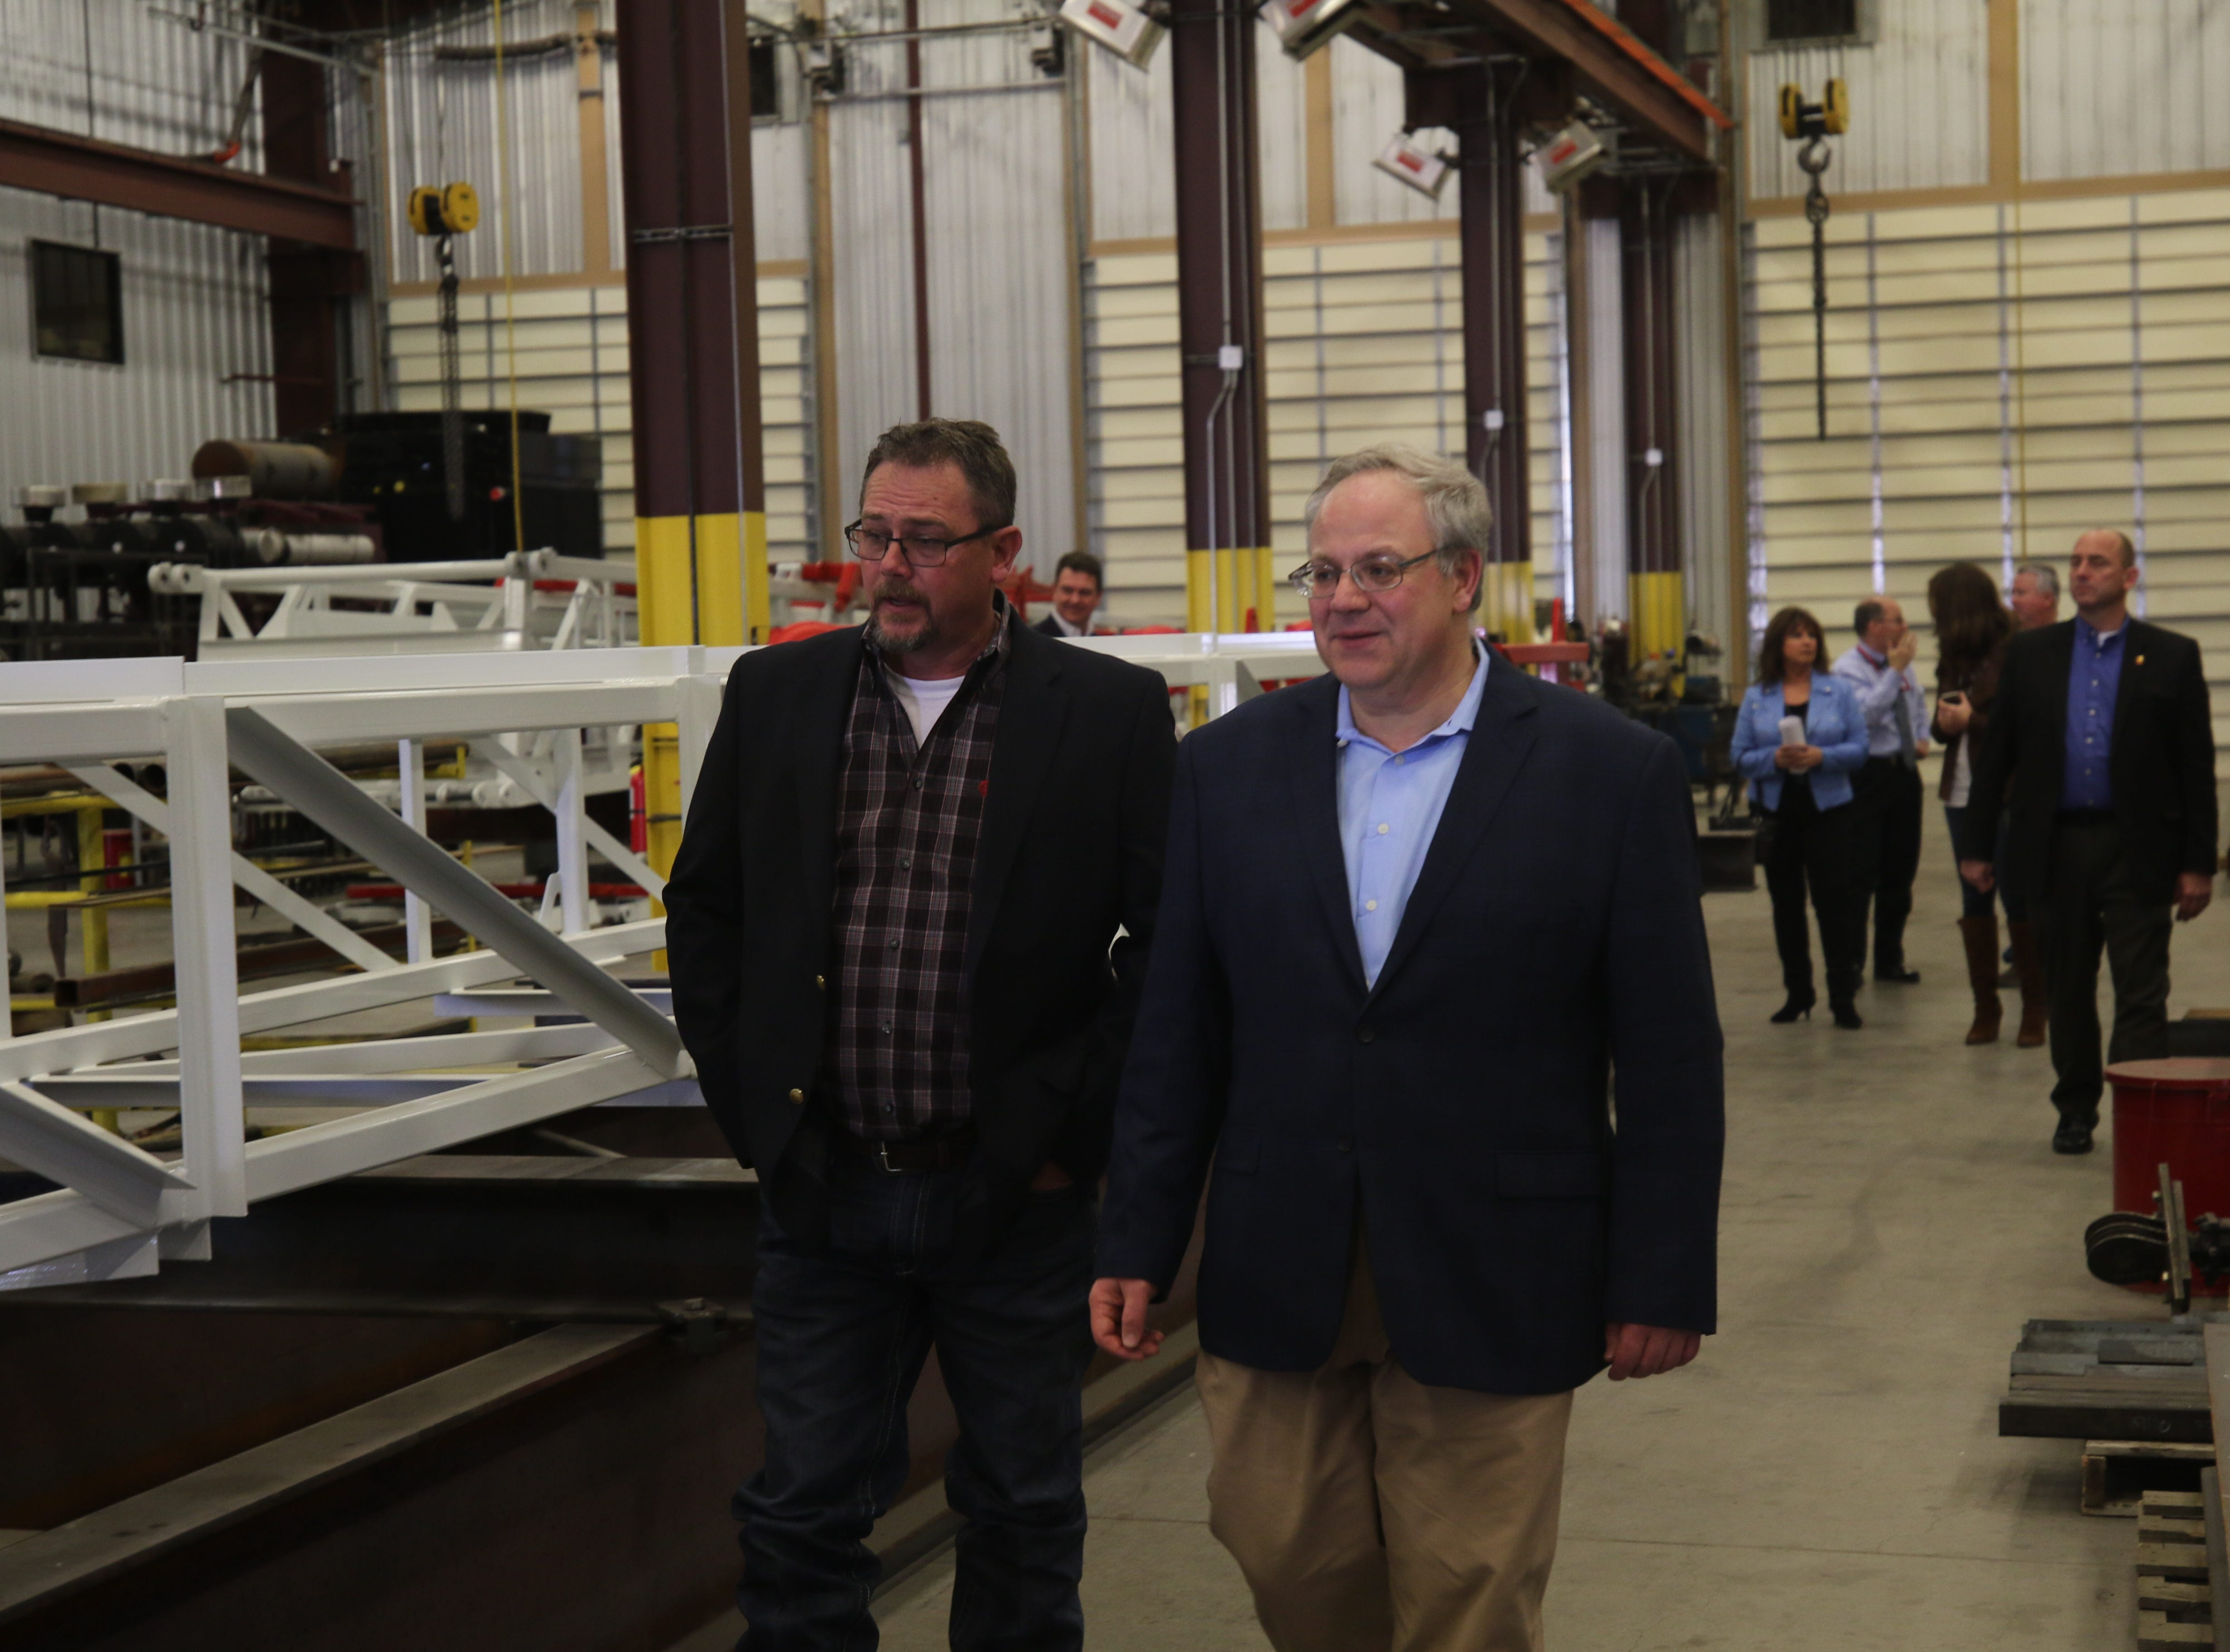 Acting U.S. Secretary of the Interior David Bernhardt meets with staff at Watson and Hopper, Feb. 6, 2019 in Hobbs.